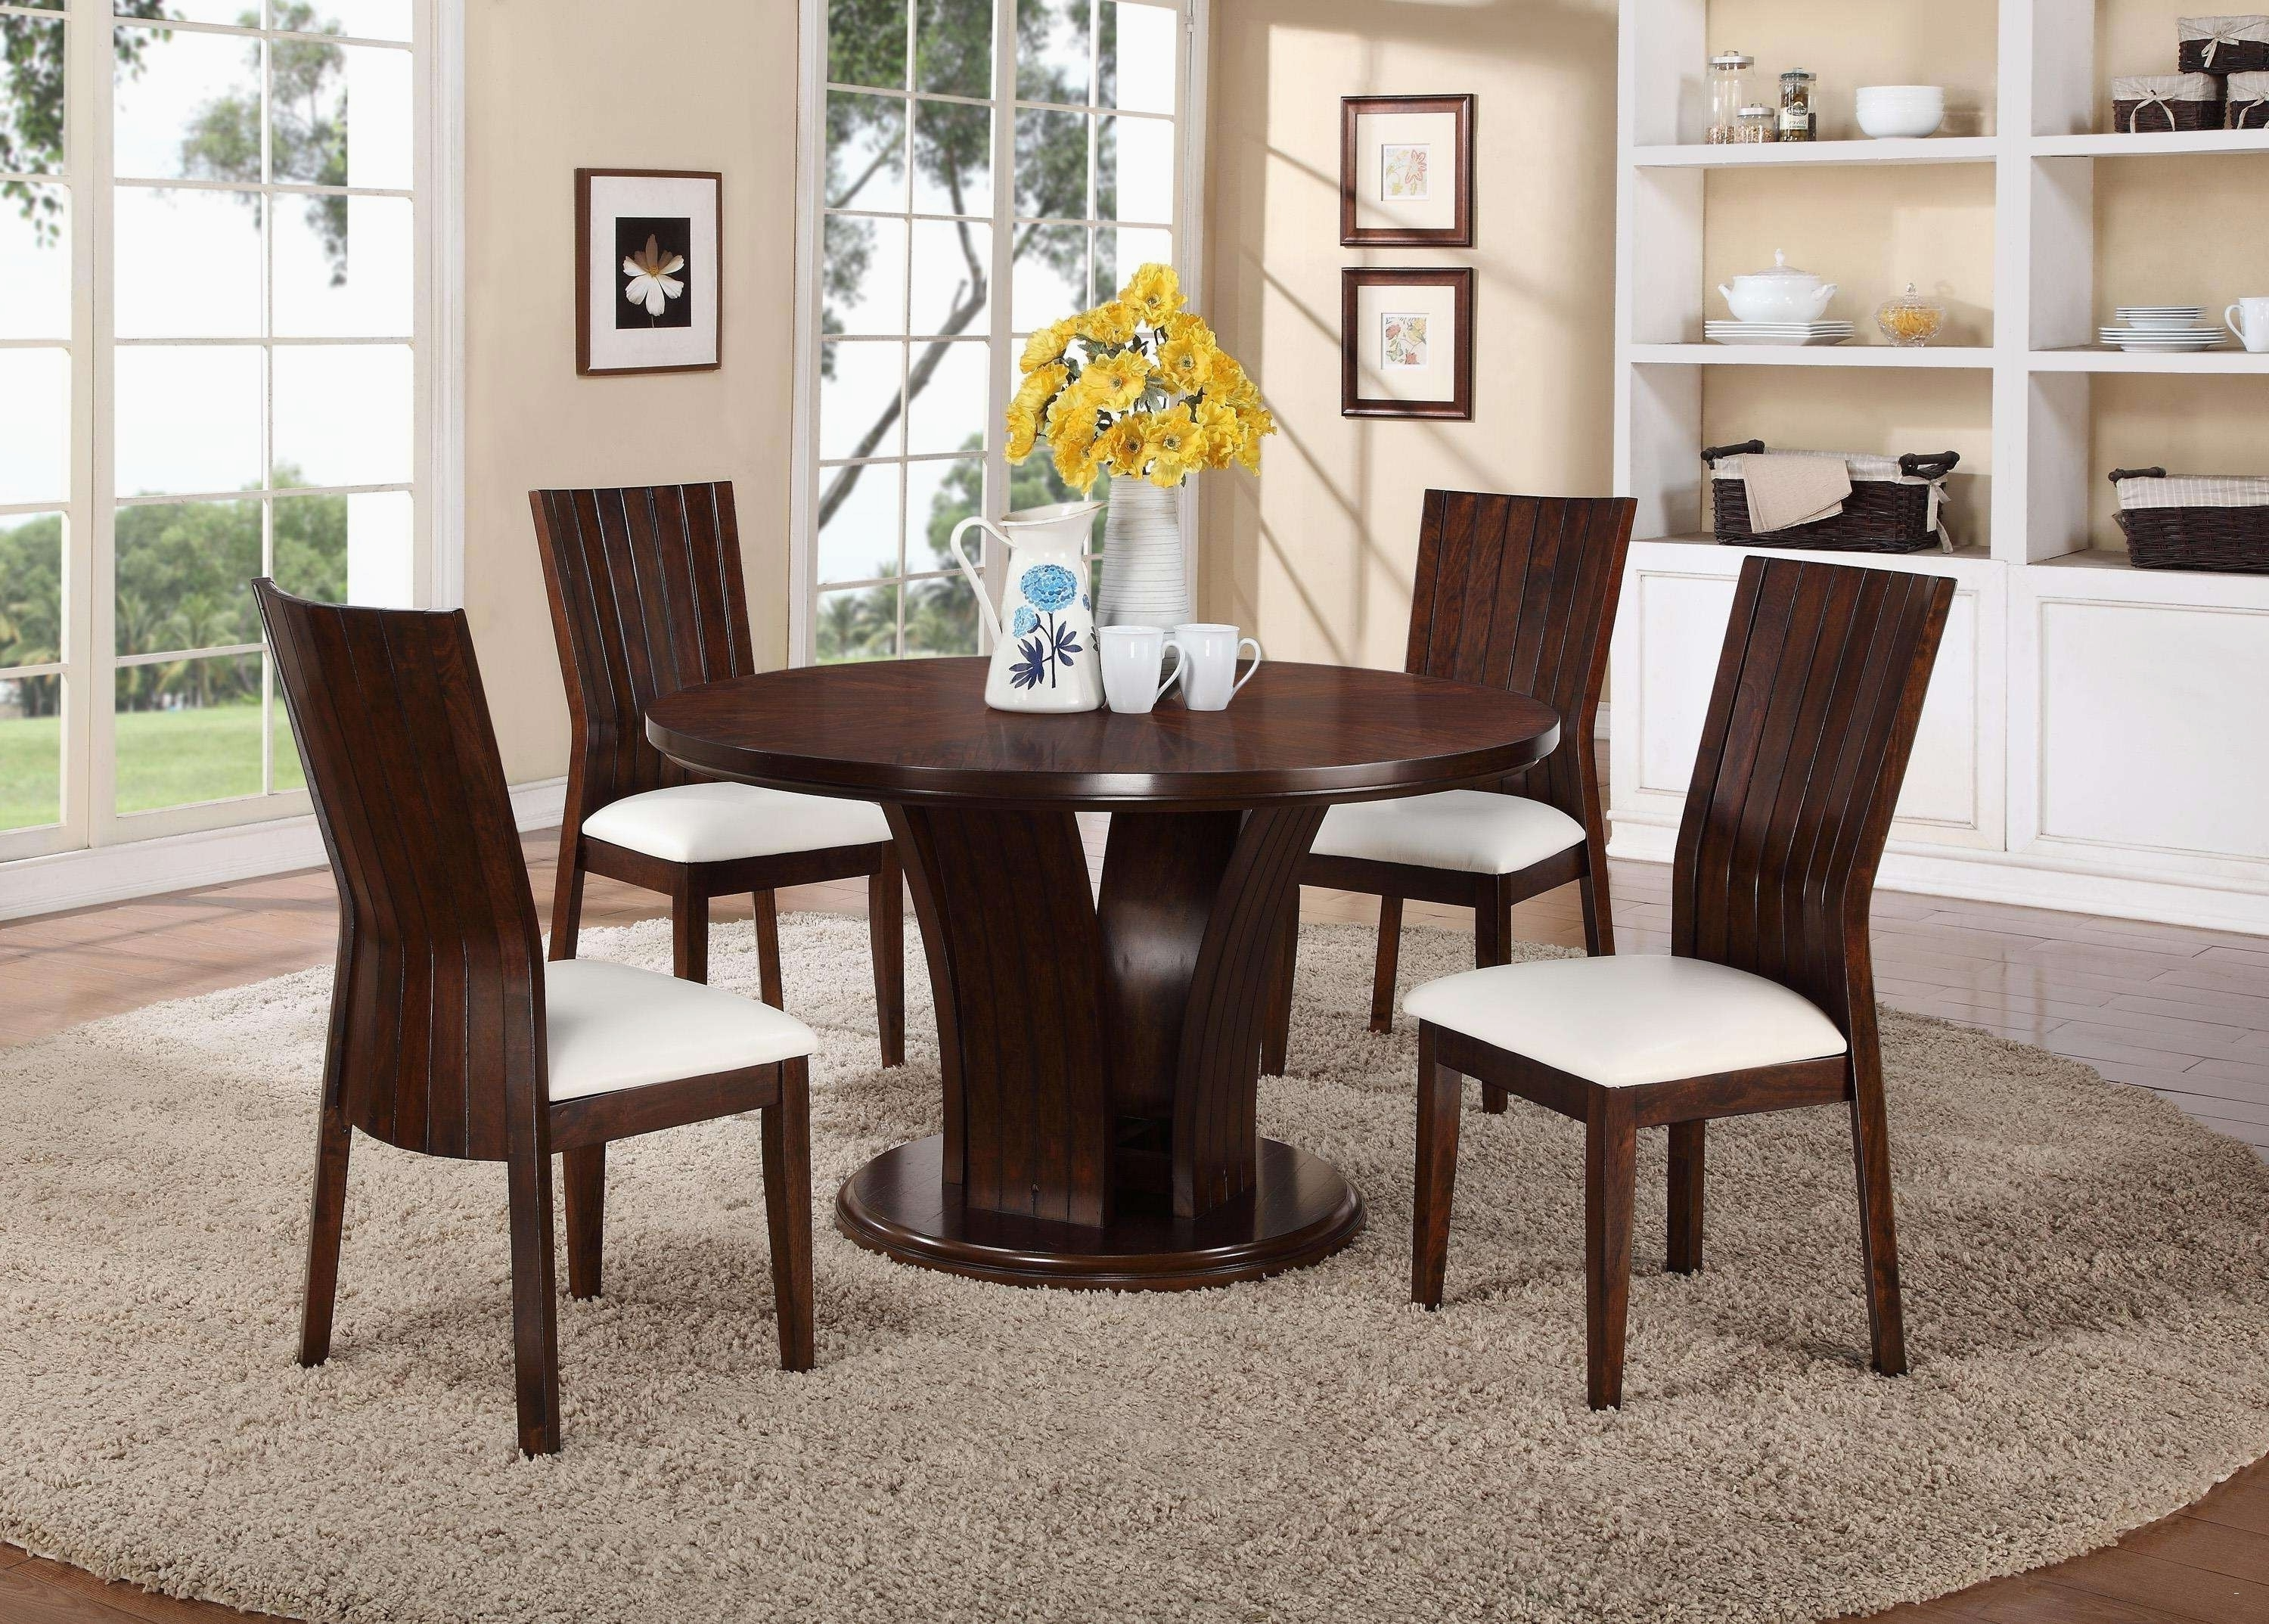 Preferred Stylish Dining Chairs For Stylish Dining Table Unique Simple Wood Dining Room Chairs New  (View 13 of 25)